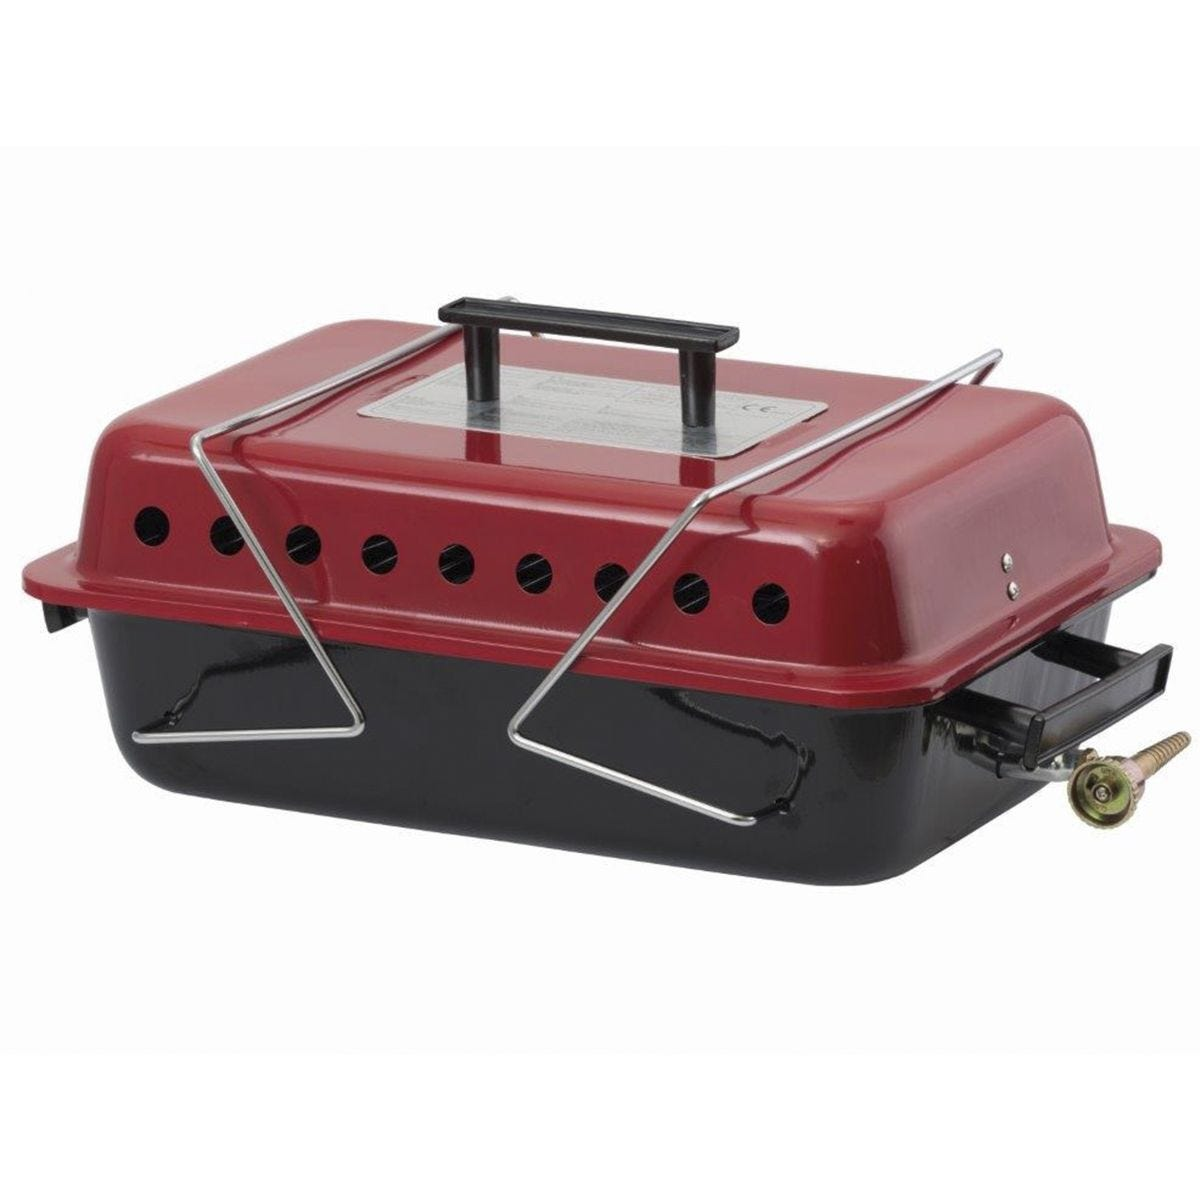 Portable Gas Camping BBQ with Lava Rocks